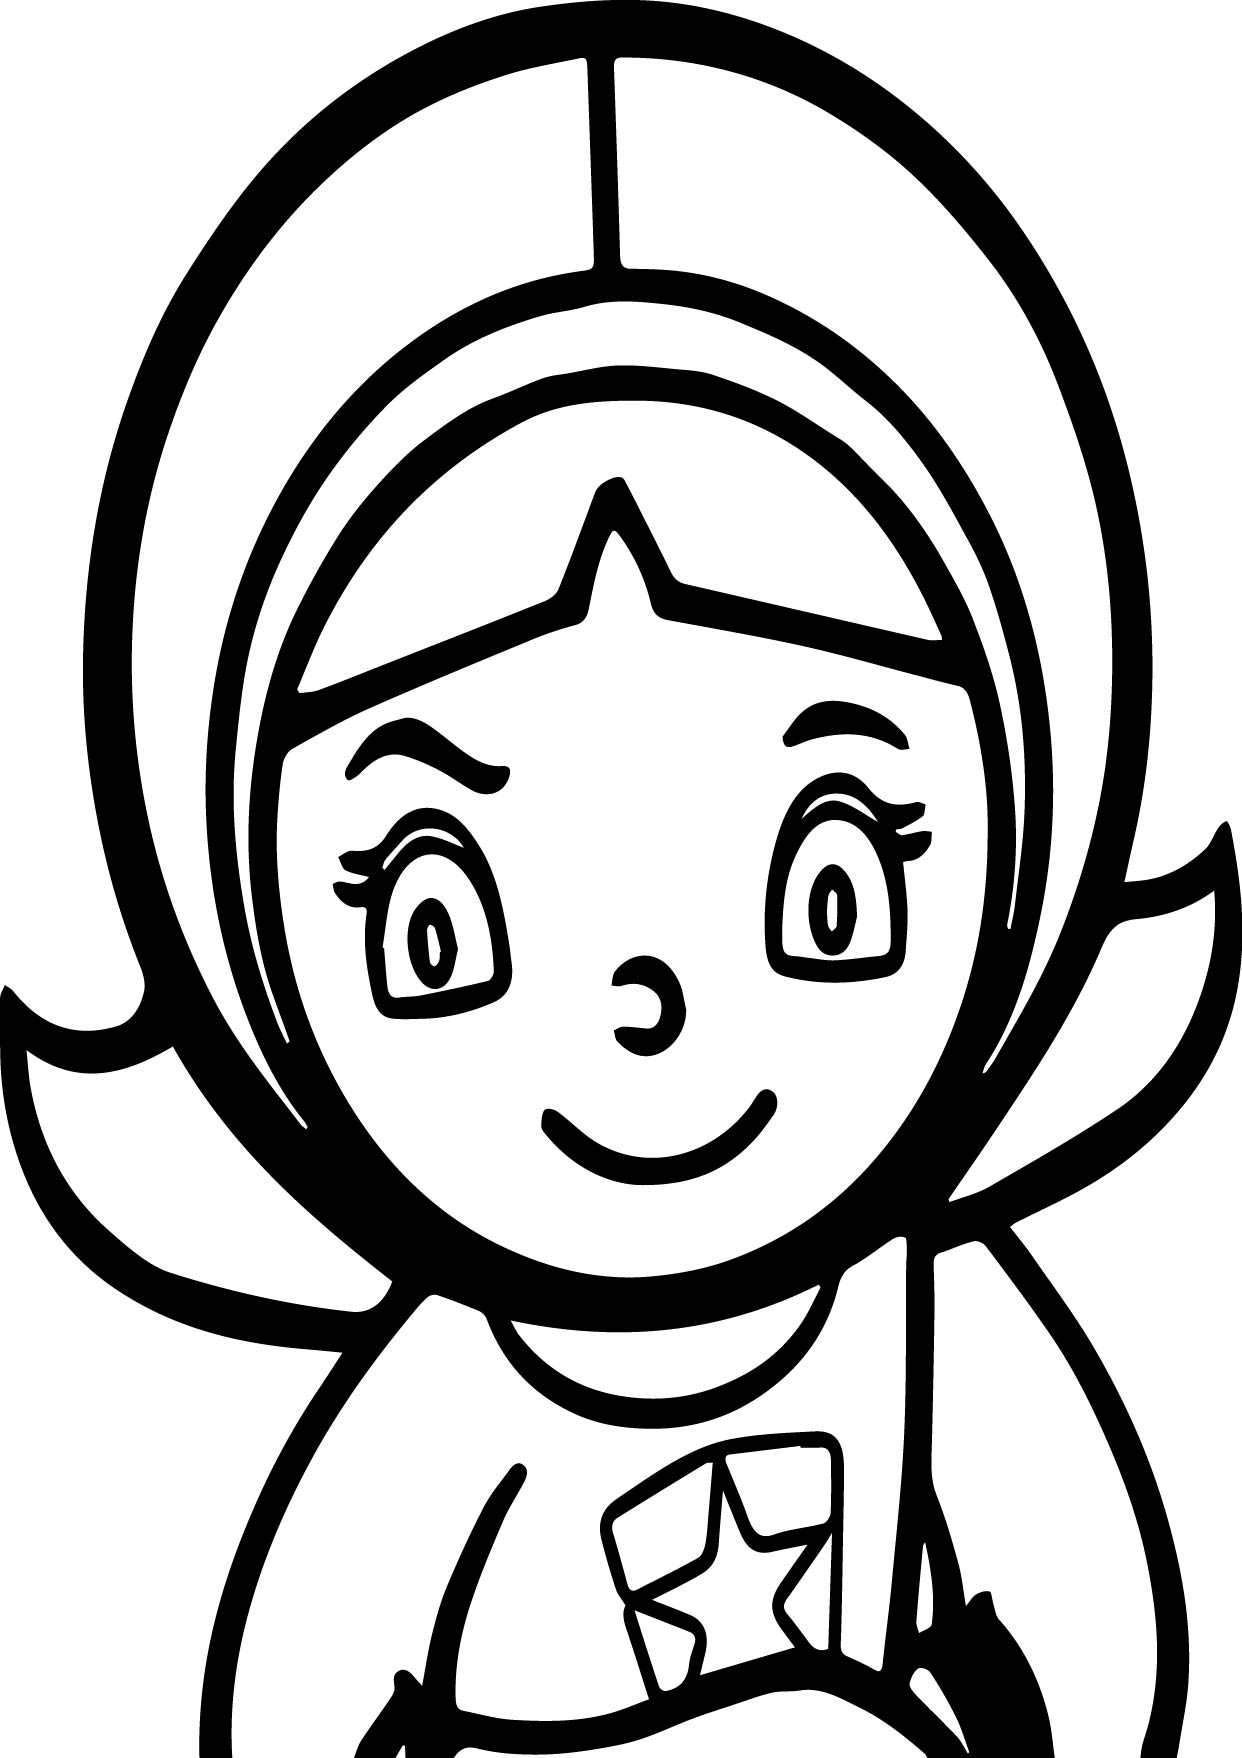 Image - Word-Girl-Pbs-Kids-Coloring-Page.jpg | Kart Kingdom Wikia ...